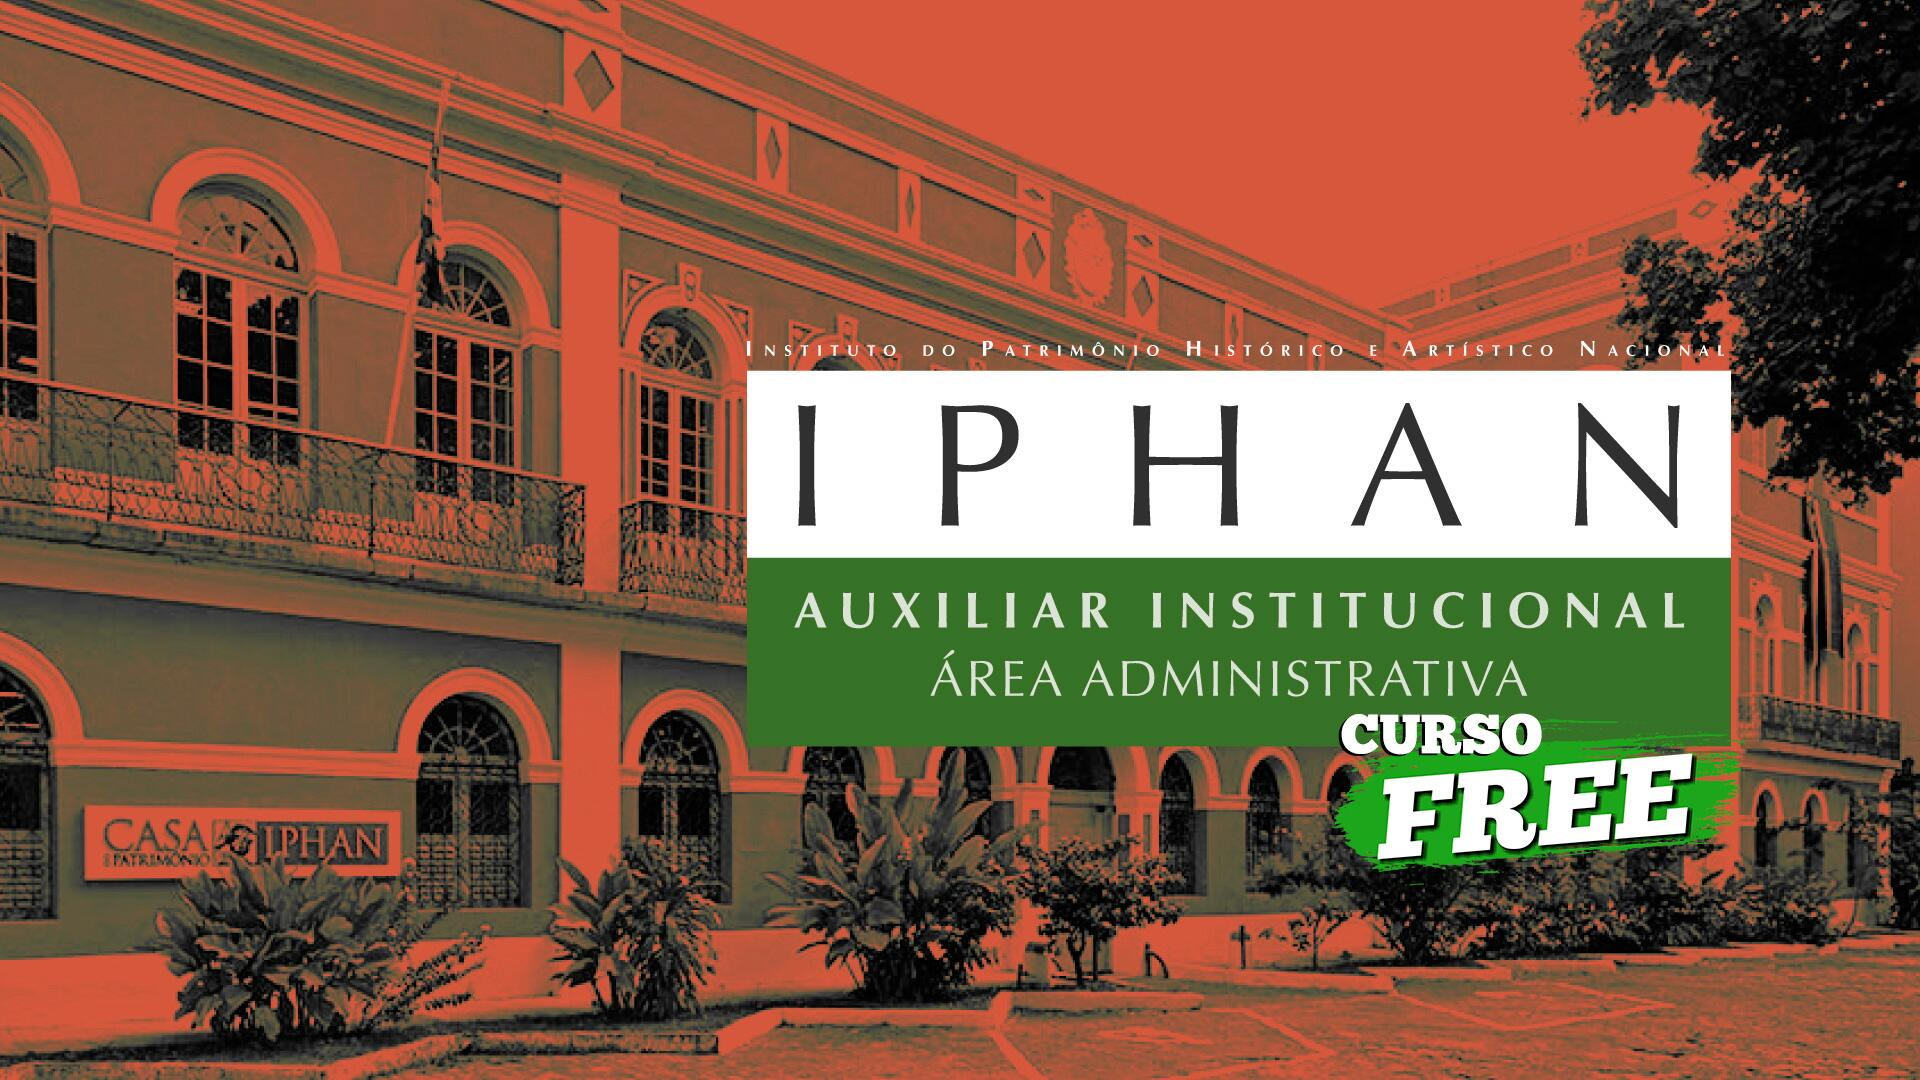 Iphan aux institucional yt streaming